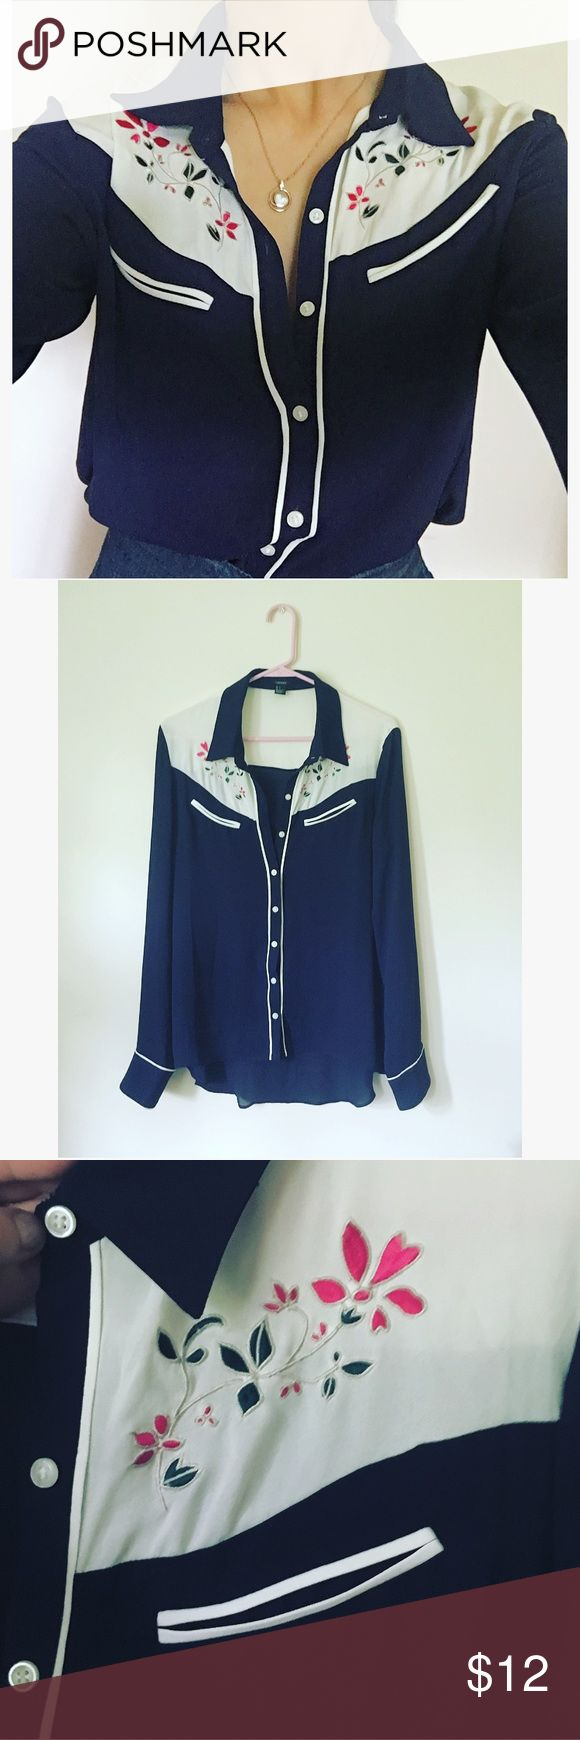 Embroidered blue and white blouse This blouse is gauzy but not sheer, and has blue and white paneling with embroidered pink flowers under the collar. Button up front and long sleeves, looks great ticket into a high waisted pair of jeans. Worn once Forever 21 Tops Blouses